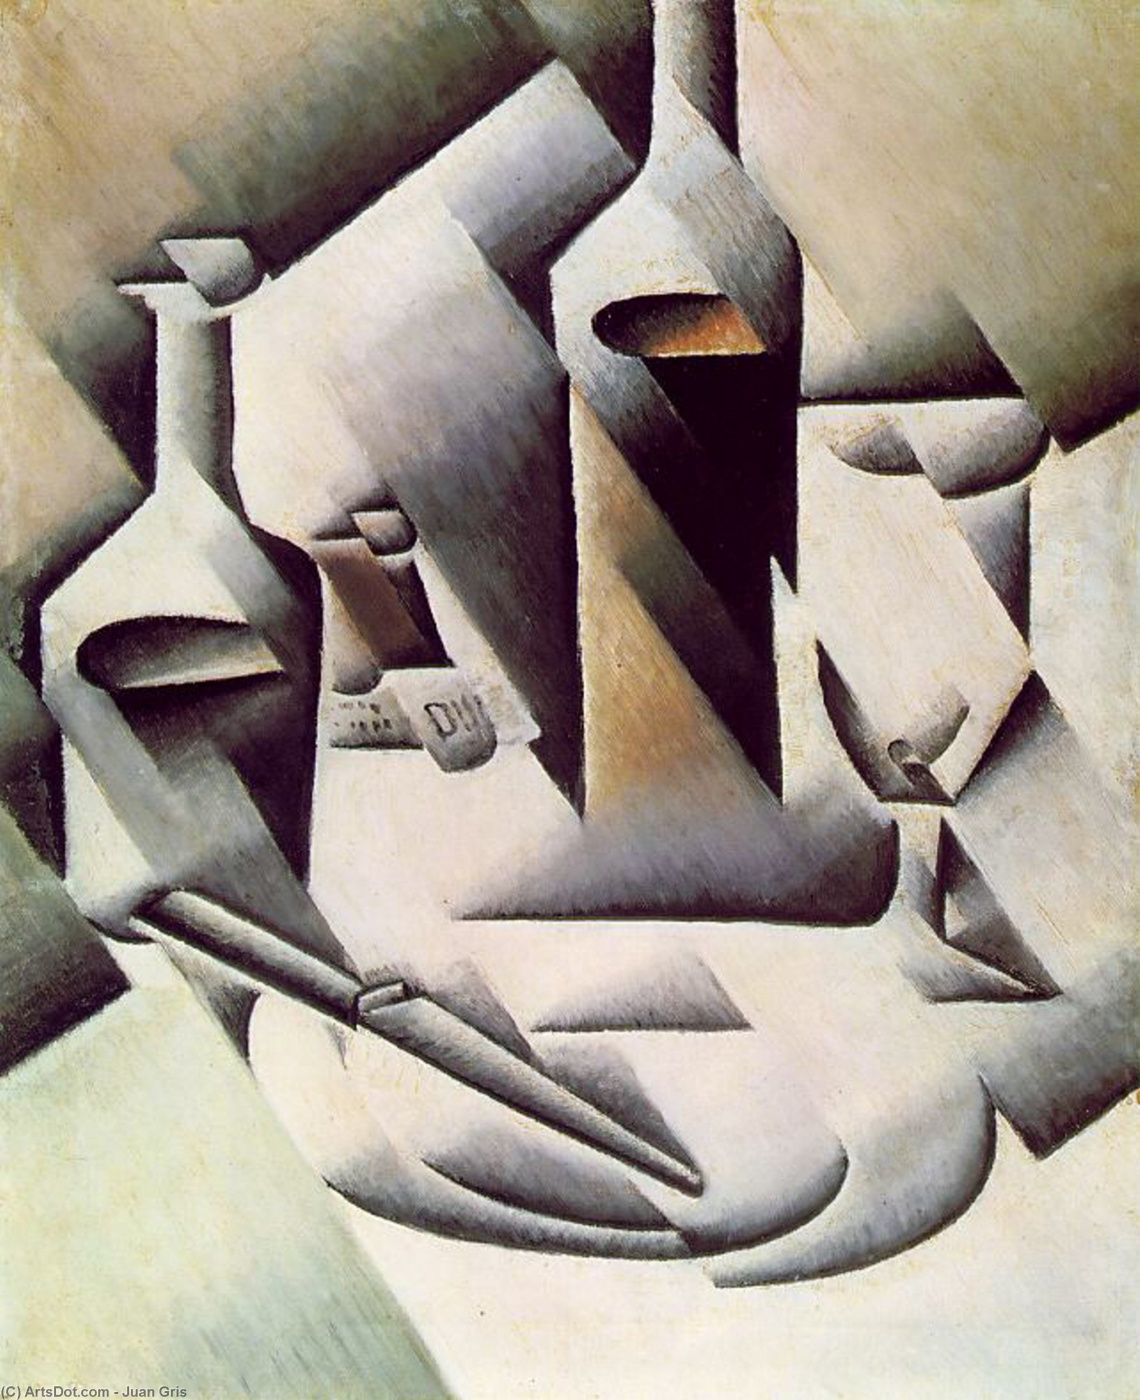 Juan Gris. Still life with bottles and knife